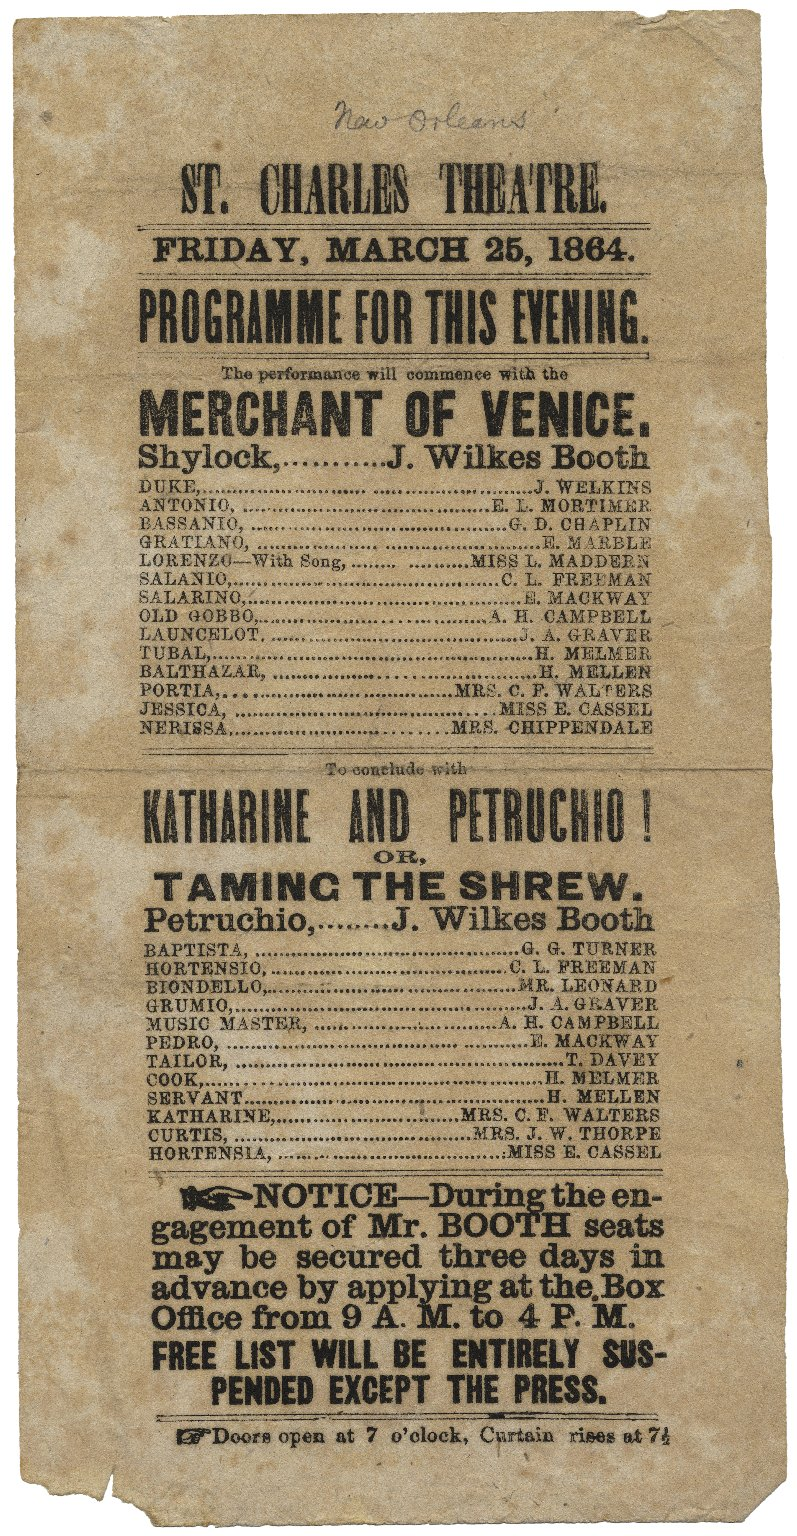 Merchant of Venice playbill, St. Charles Theatre, Friday March 25, 1864